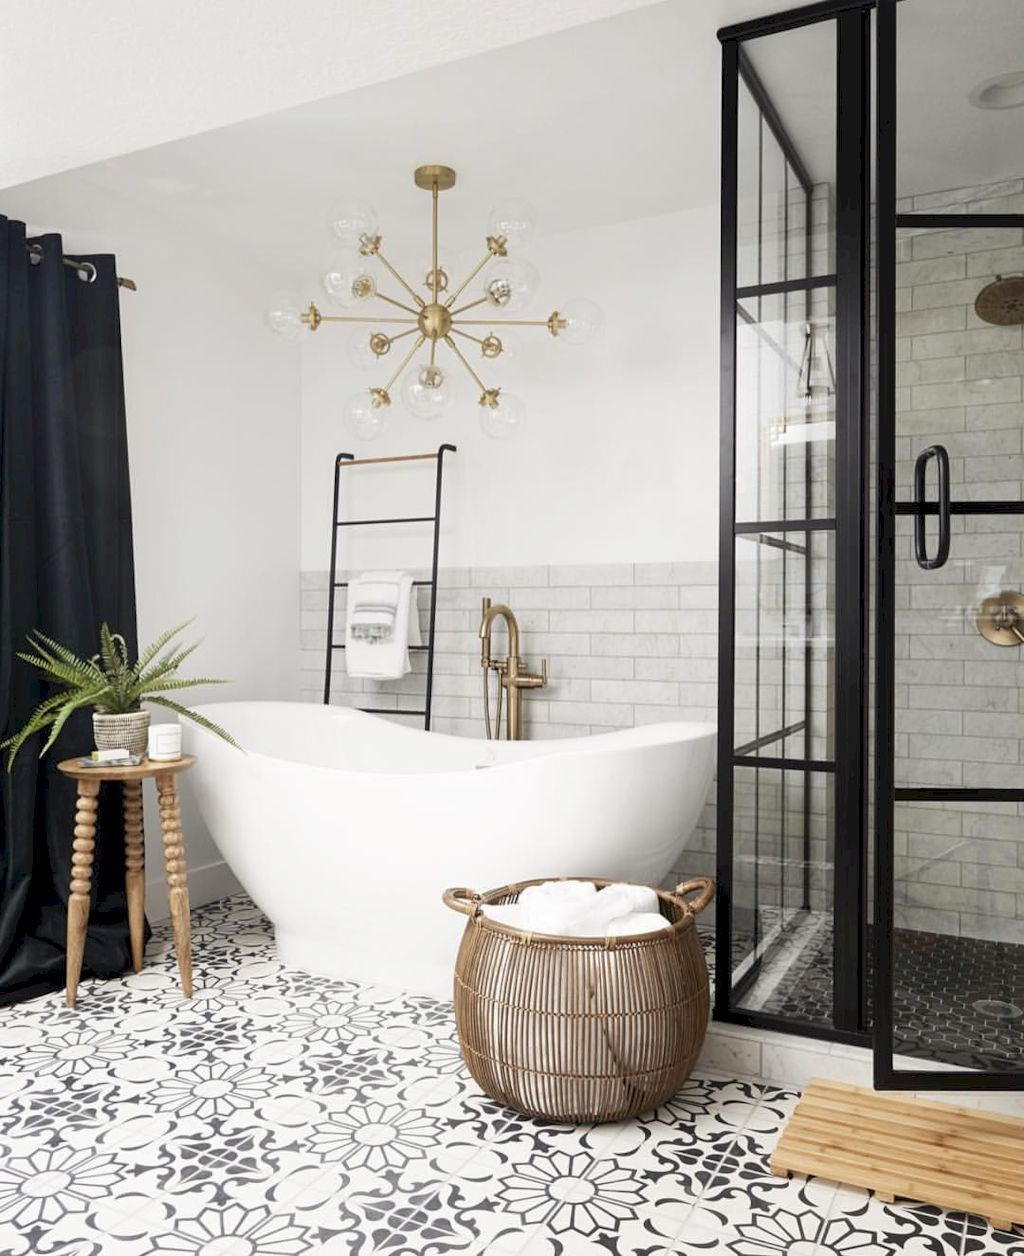 Beautiful bathroom update with eclectic patterned tiles and ethnic rugs very efficient to improve bathroom floor design Image 32